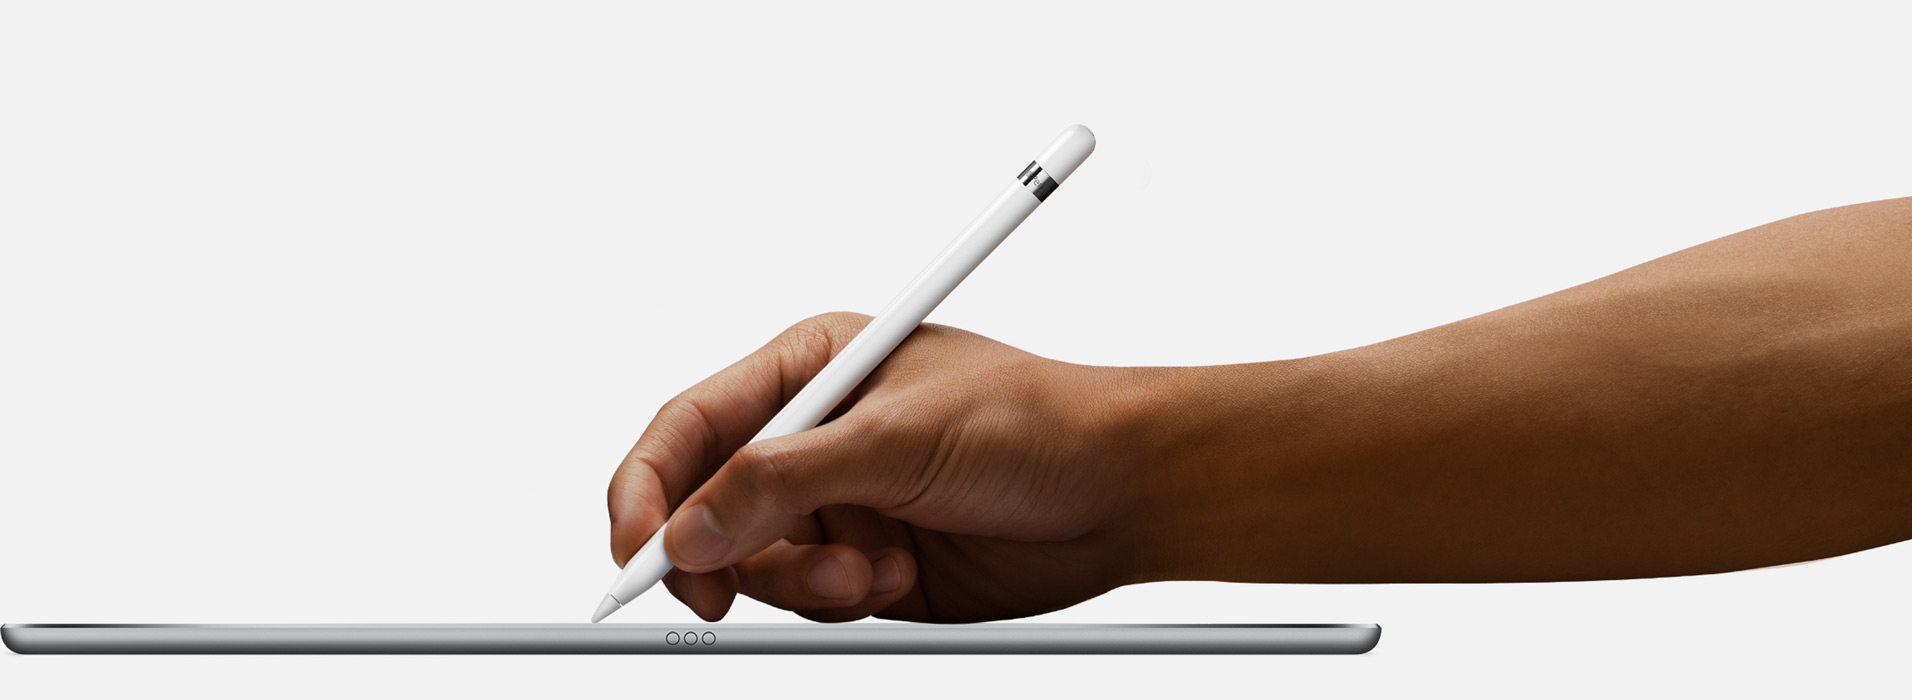 http://images.apple.com/v/ipad-pro/a/images/overview/apple_pencil_large.jpg